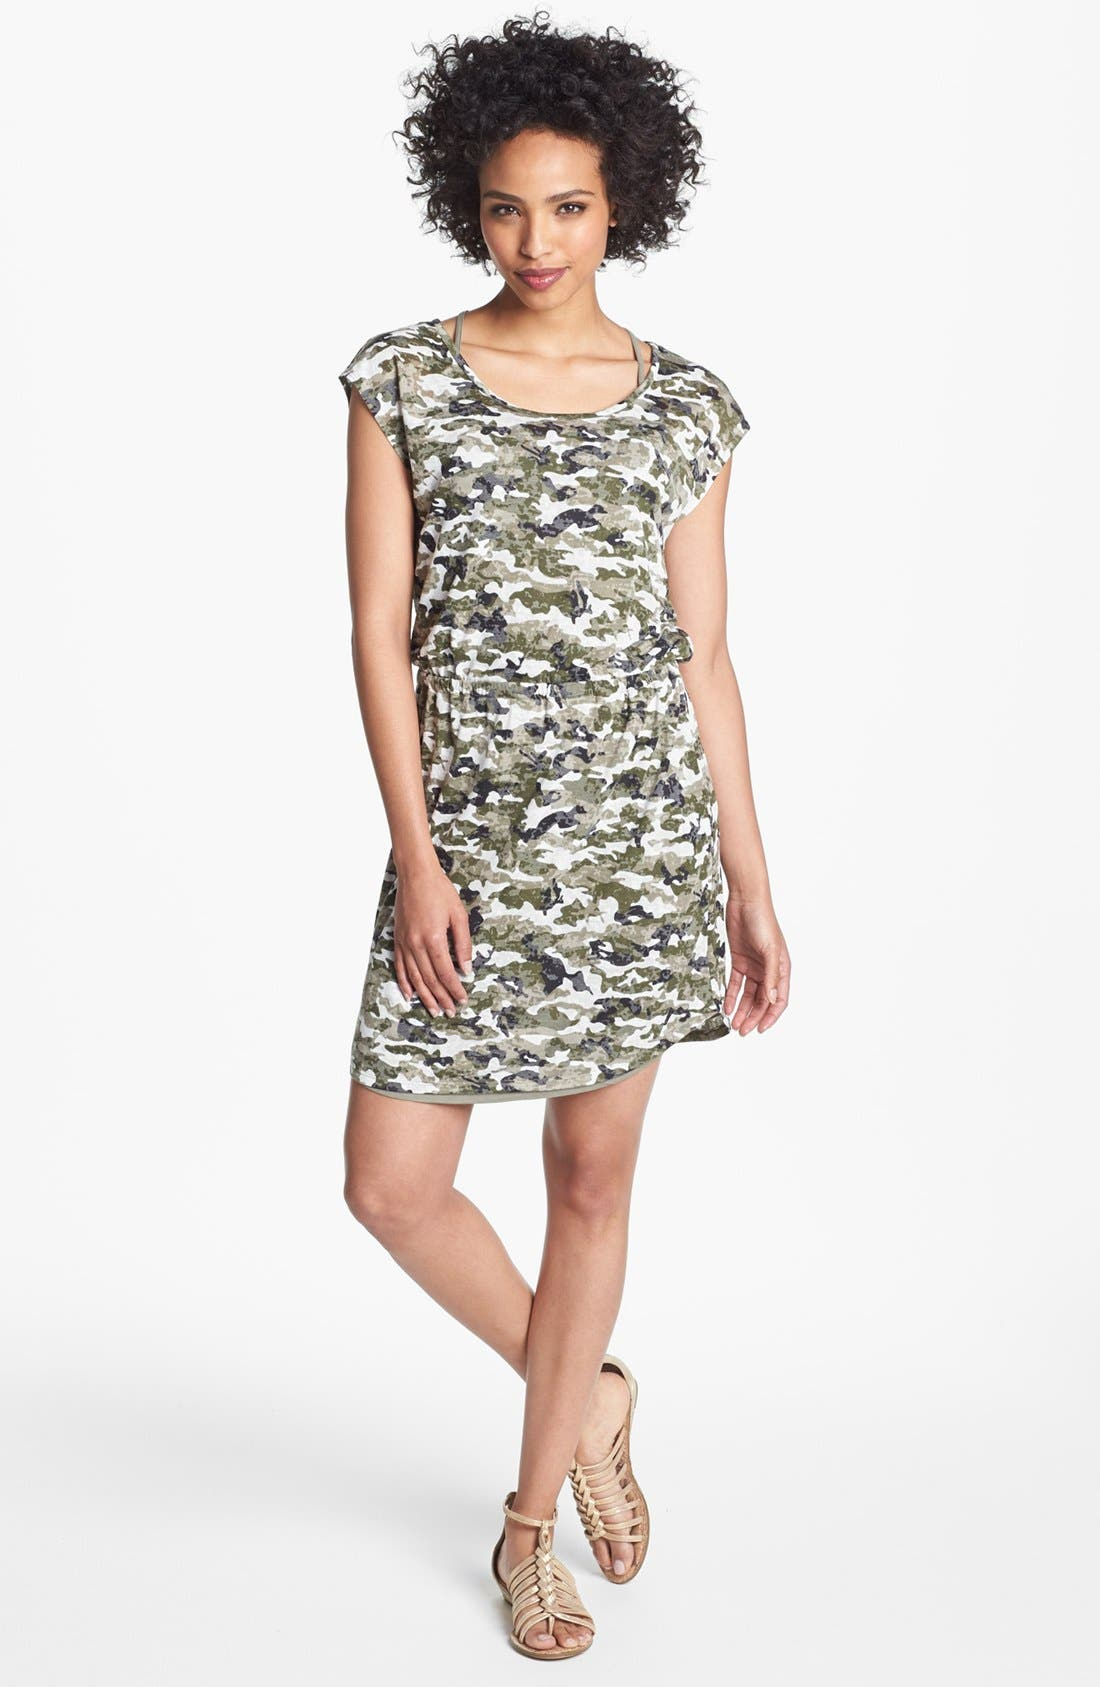 Main Image - Two by Vince Camuto Camo Print Dress